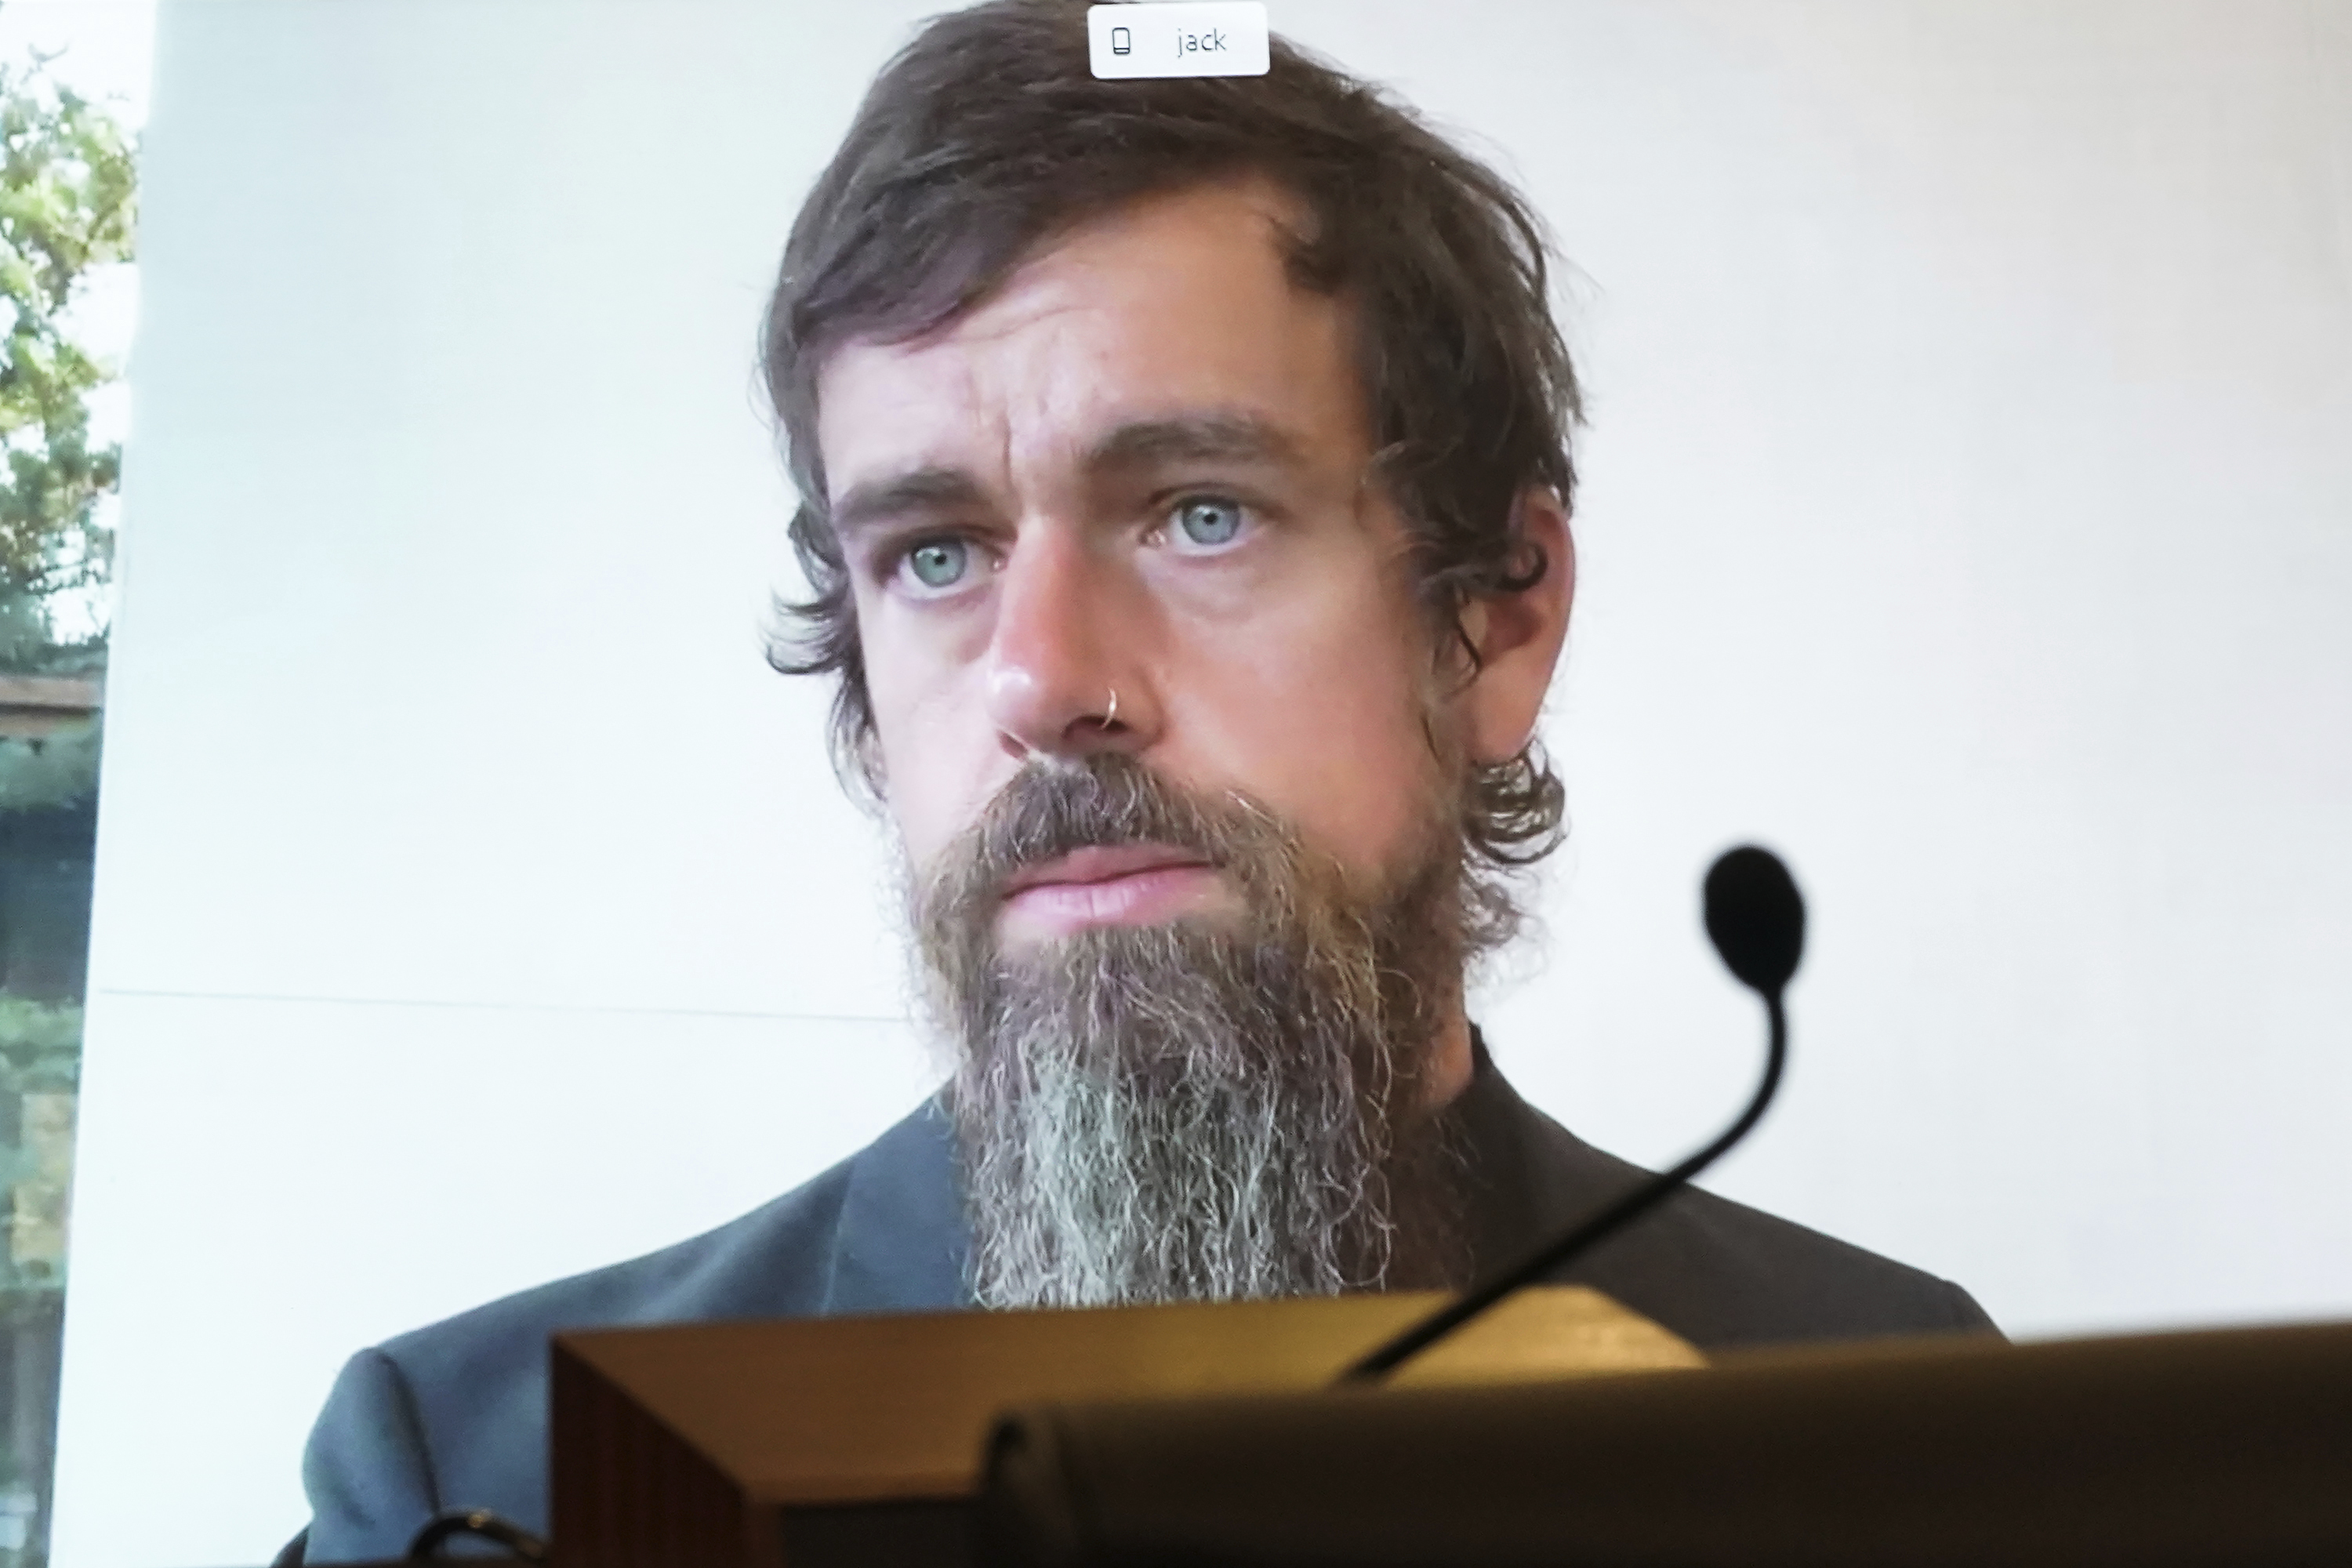 Twitter CEO Jack Dorsey appears on a screen as he speaks remotely during a hearing before the Senate Commerce Committee